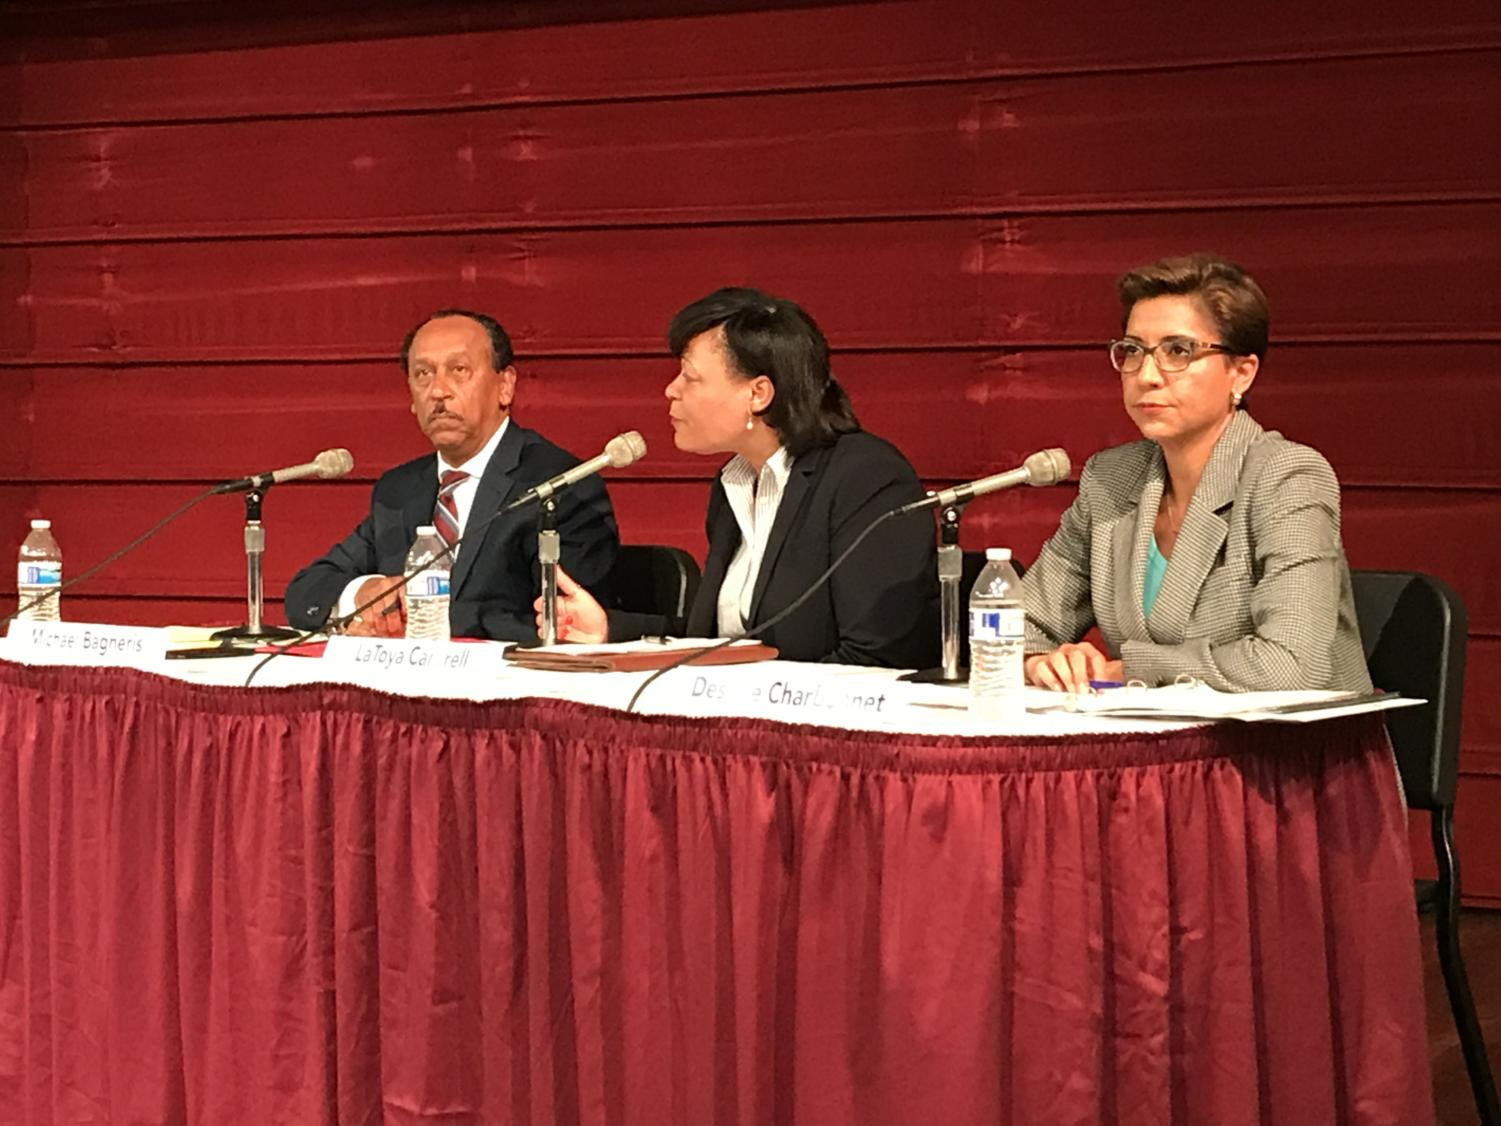 LaToya Cantrell (center) speaks at a forum in Nunemaker Auditorium on Sept. 19, 2017. She was joined by fellow runoff candidate Desiree Charbonnet (right) and third place finisher Michael Bagneris (left). Photo credit: Nick Reimann